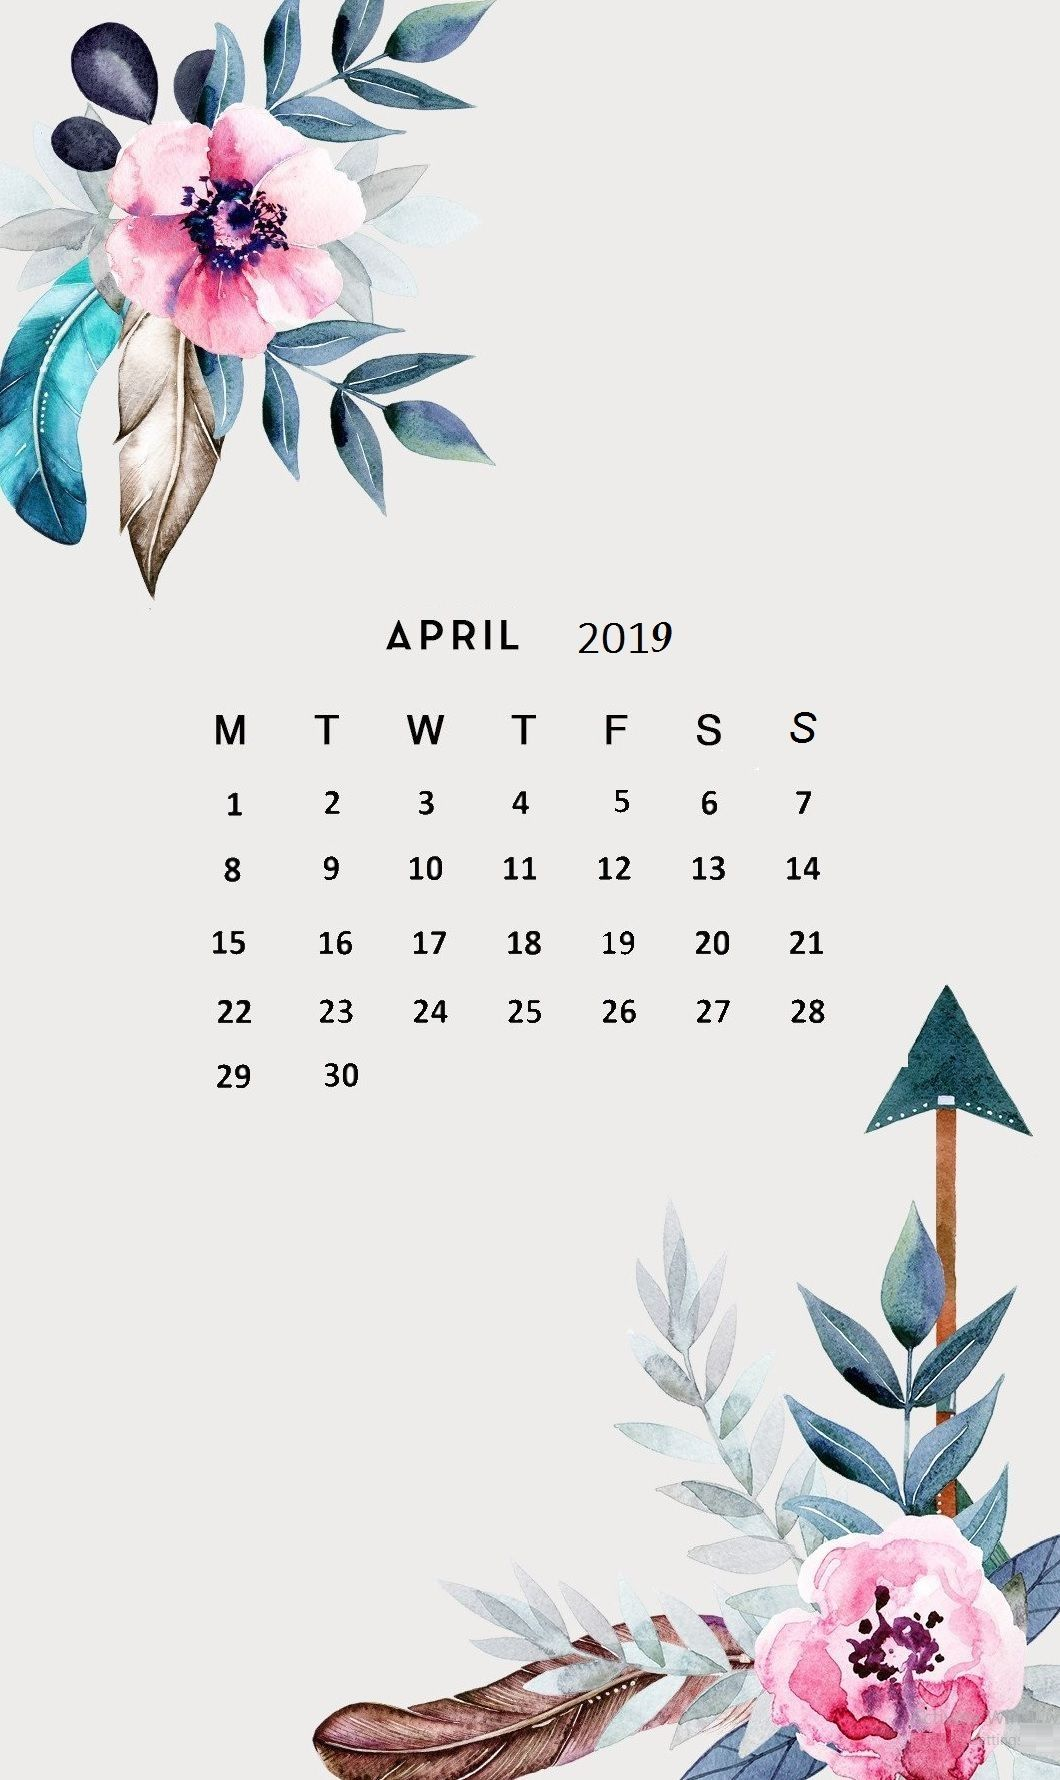 April 2019 Iphone Calendar Wallpaper Calendar Wallpaper Free